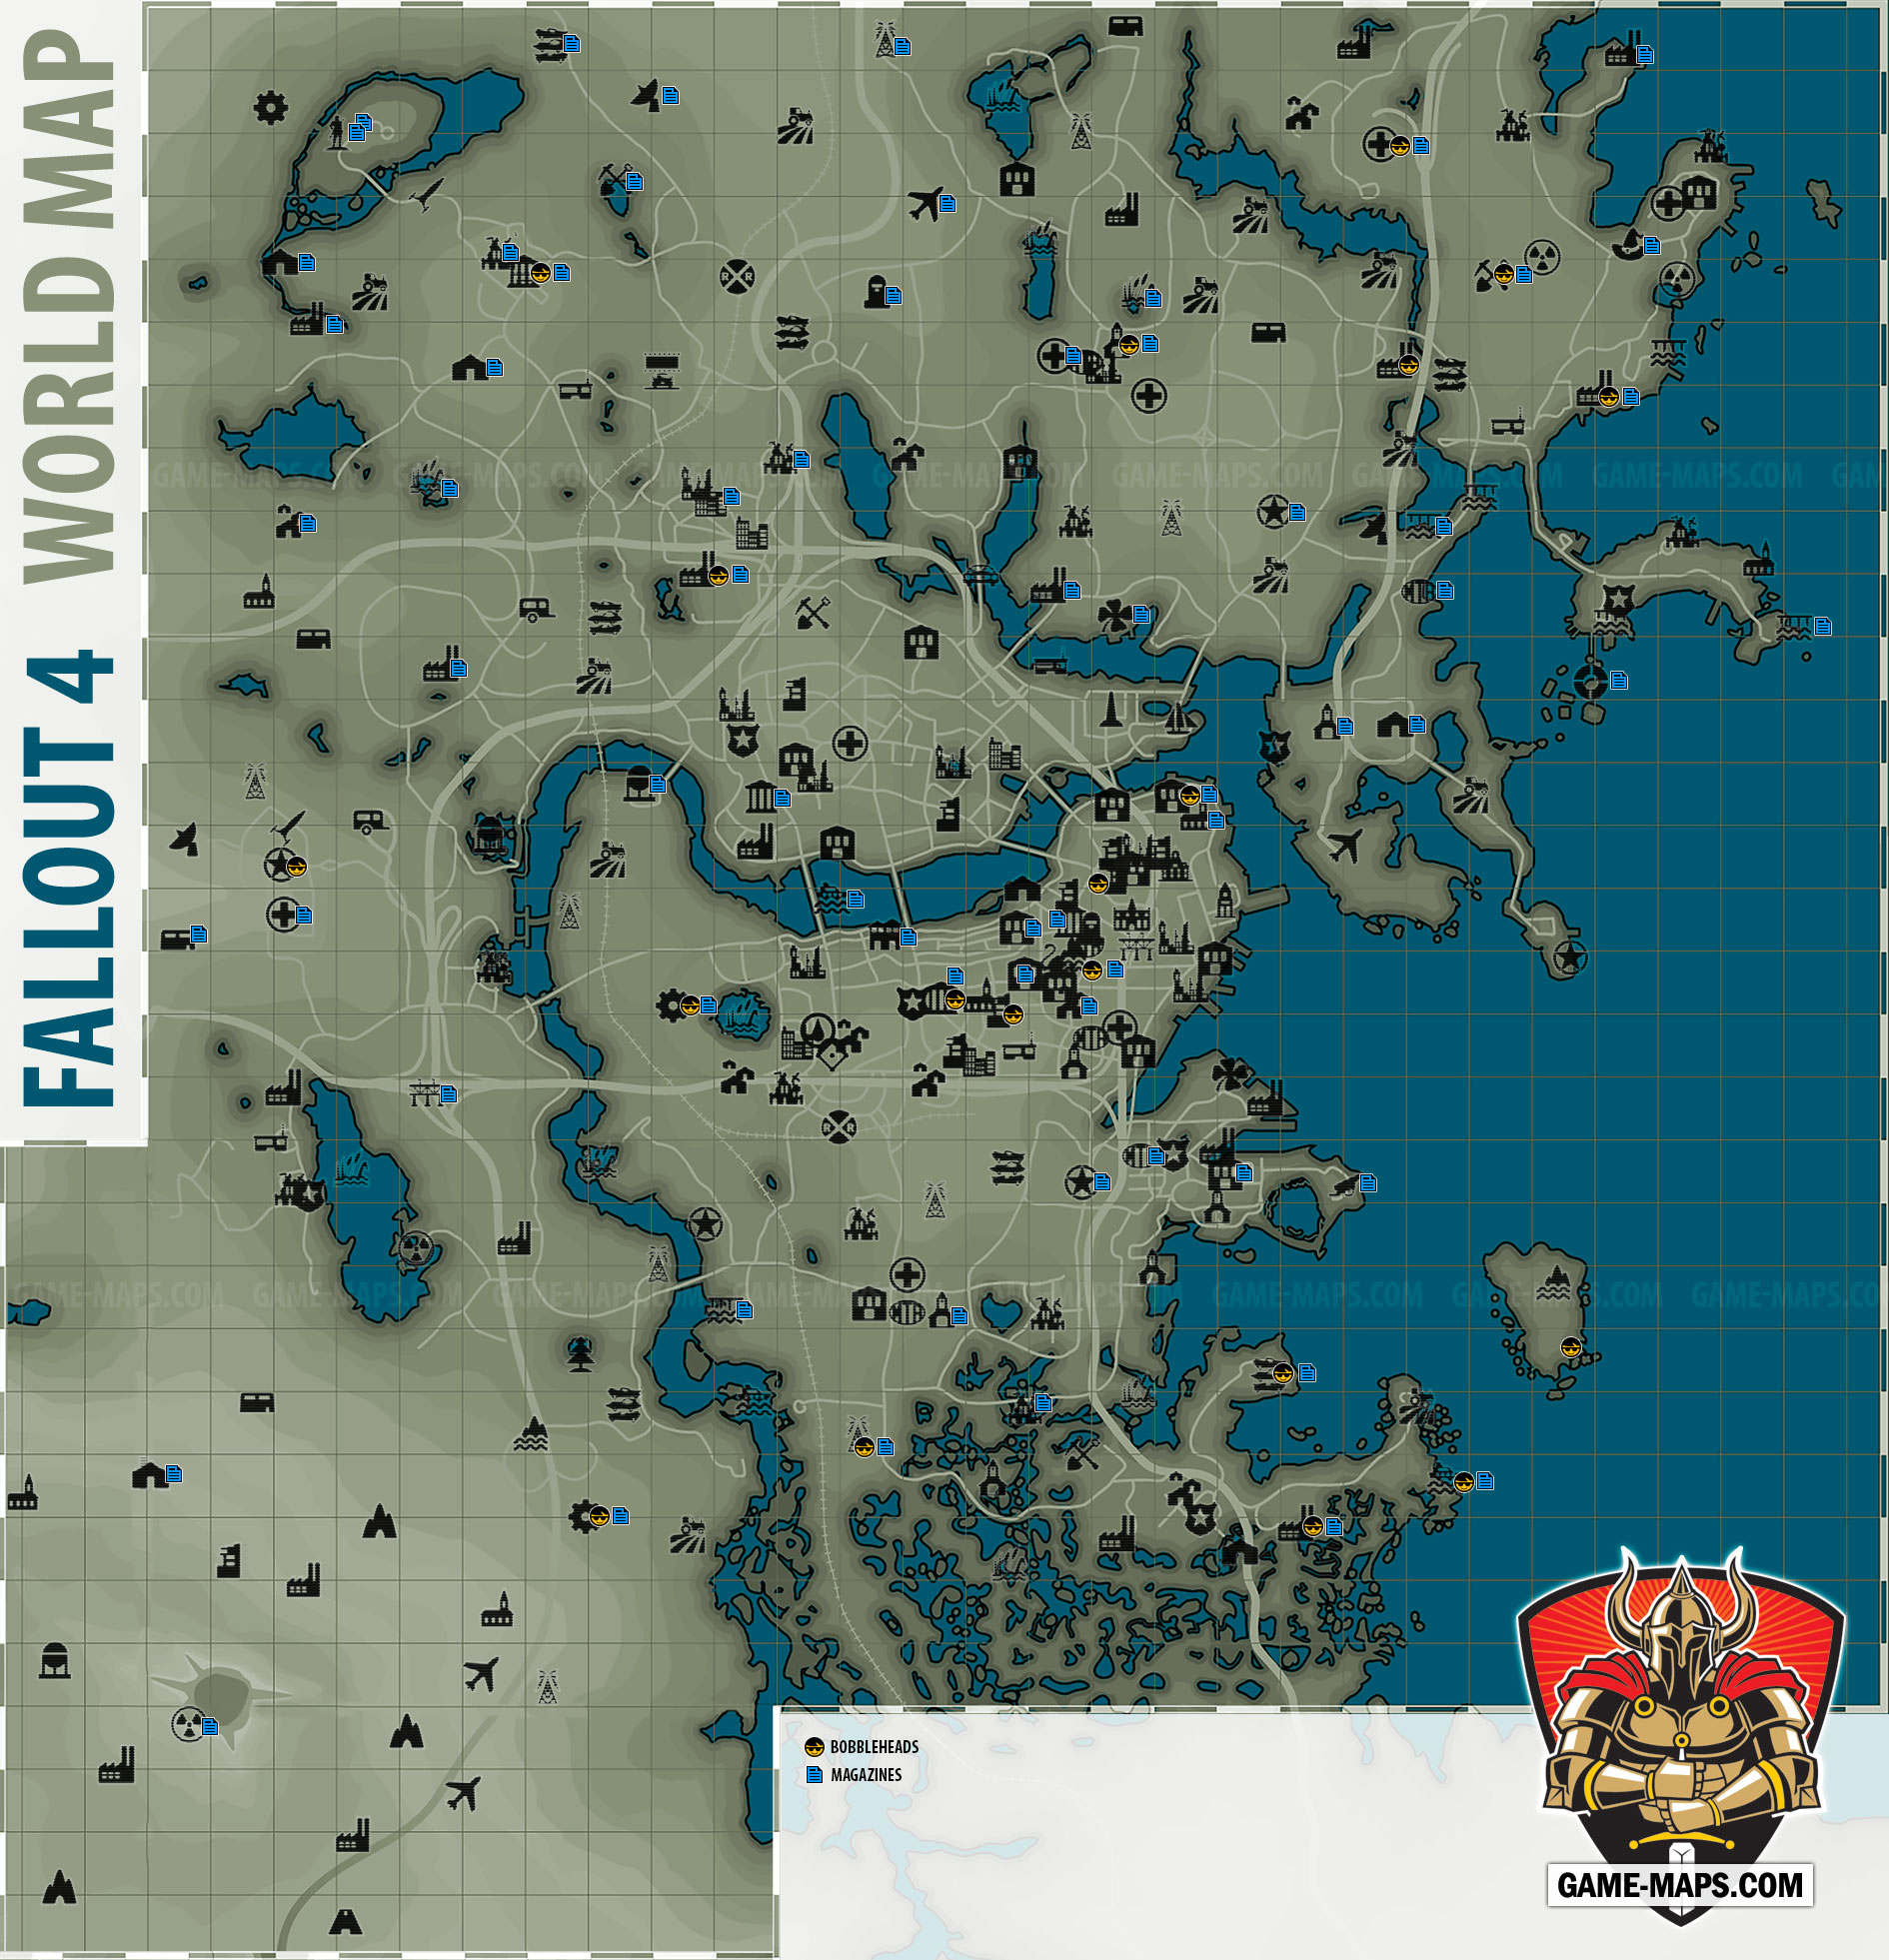 Fallout 4 World Map | game maps.com